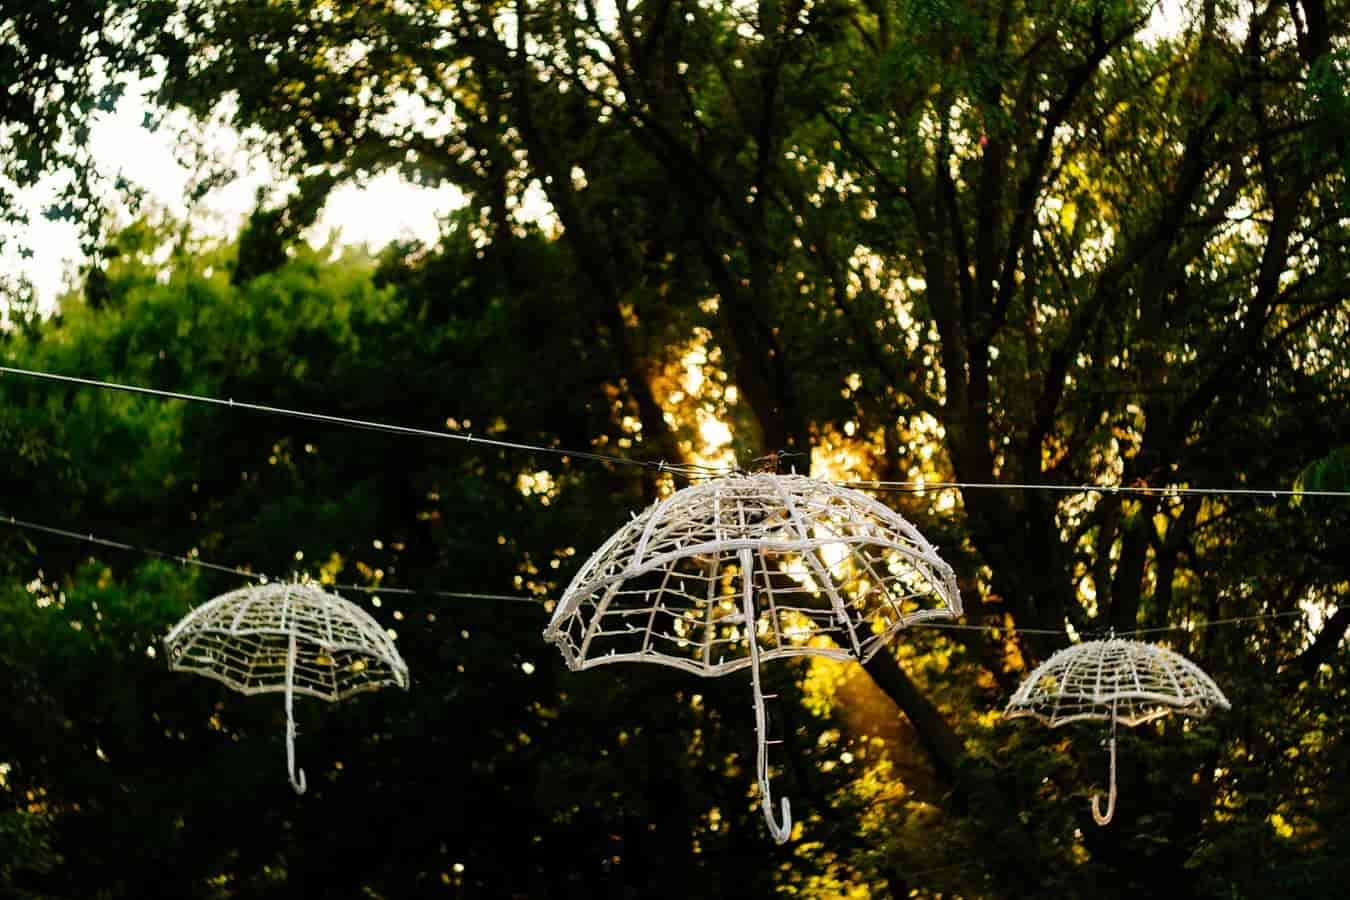 Image | 3 lighted wicker umbrellas hanging from trees